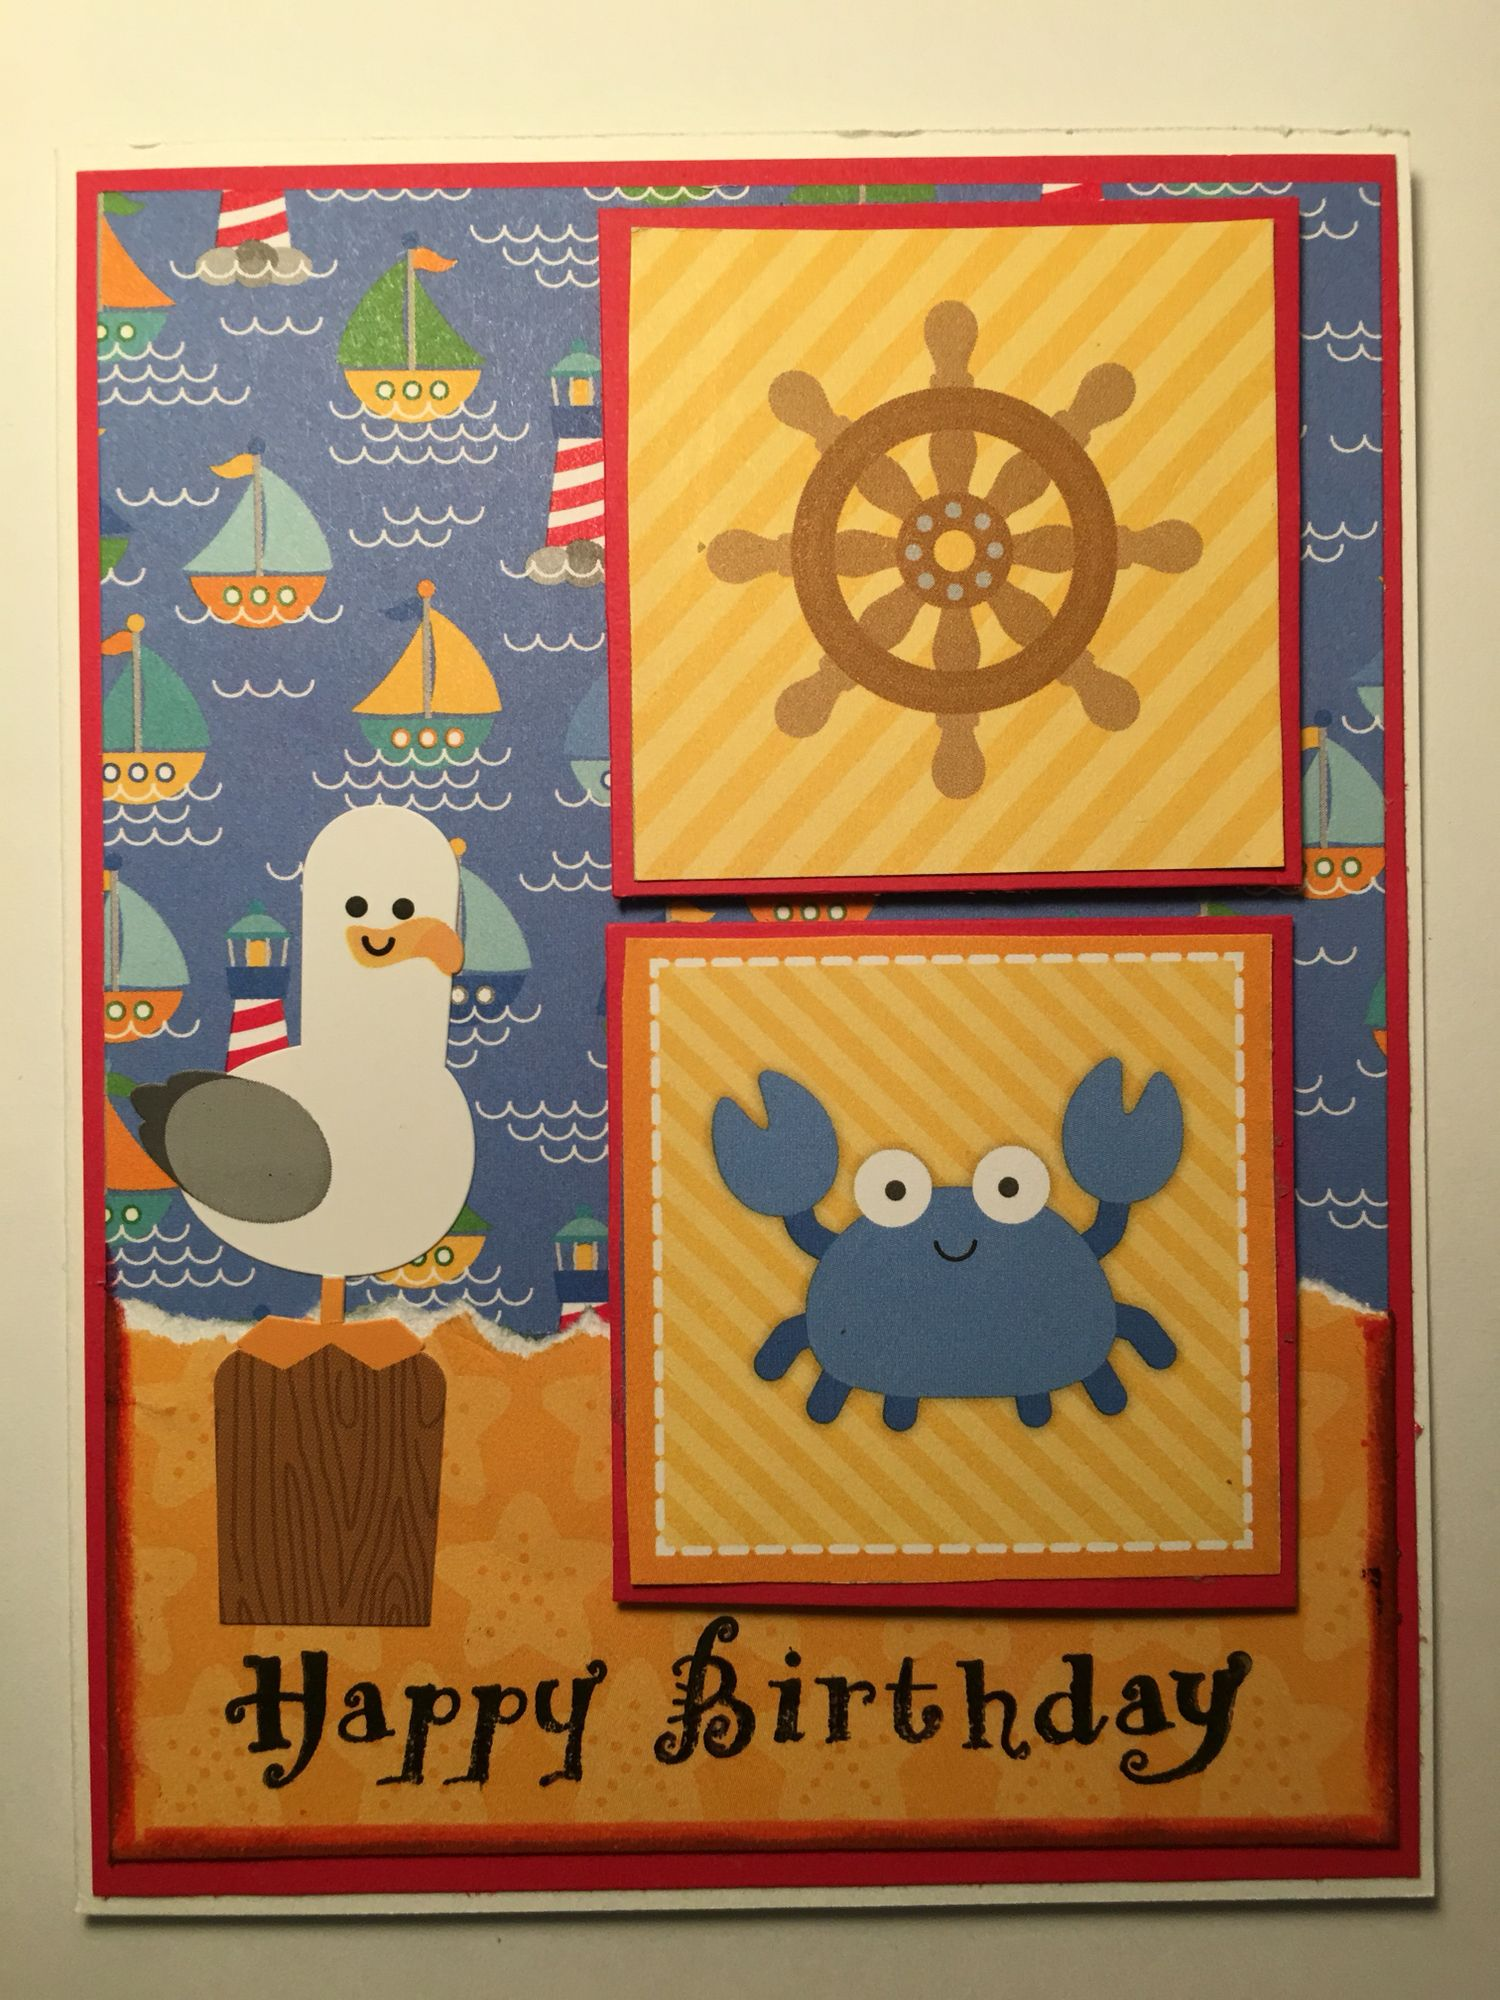 Cby happy birthday greeting card child made 13 cards from the cby happy birthday greeting card child made 13 cards from the doodlebug design exclusive scrapbooking made simple april bundle called anchors aweigh m4hsunfo